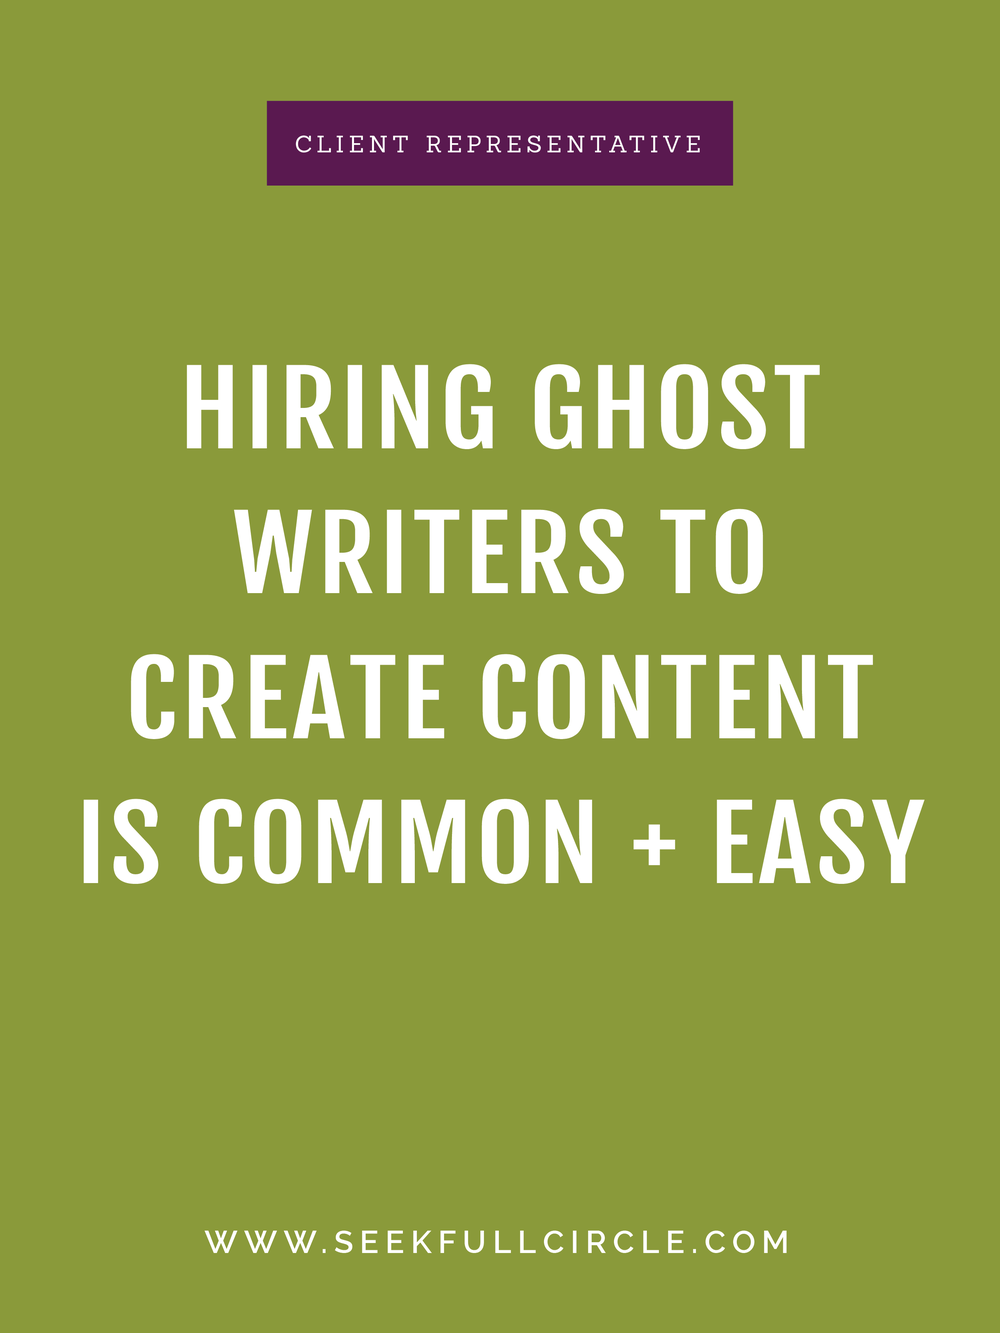 kim waltman fullcircle creative + coaching ghost writer des moines iowa blog